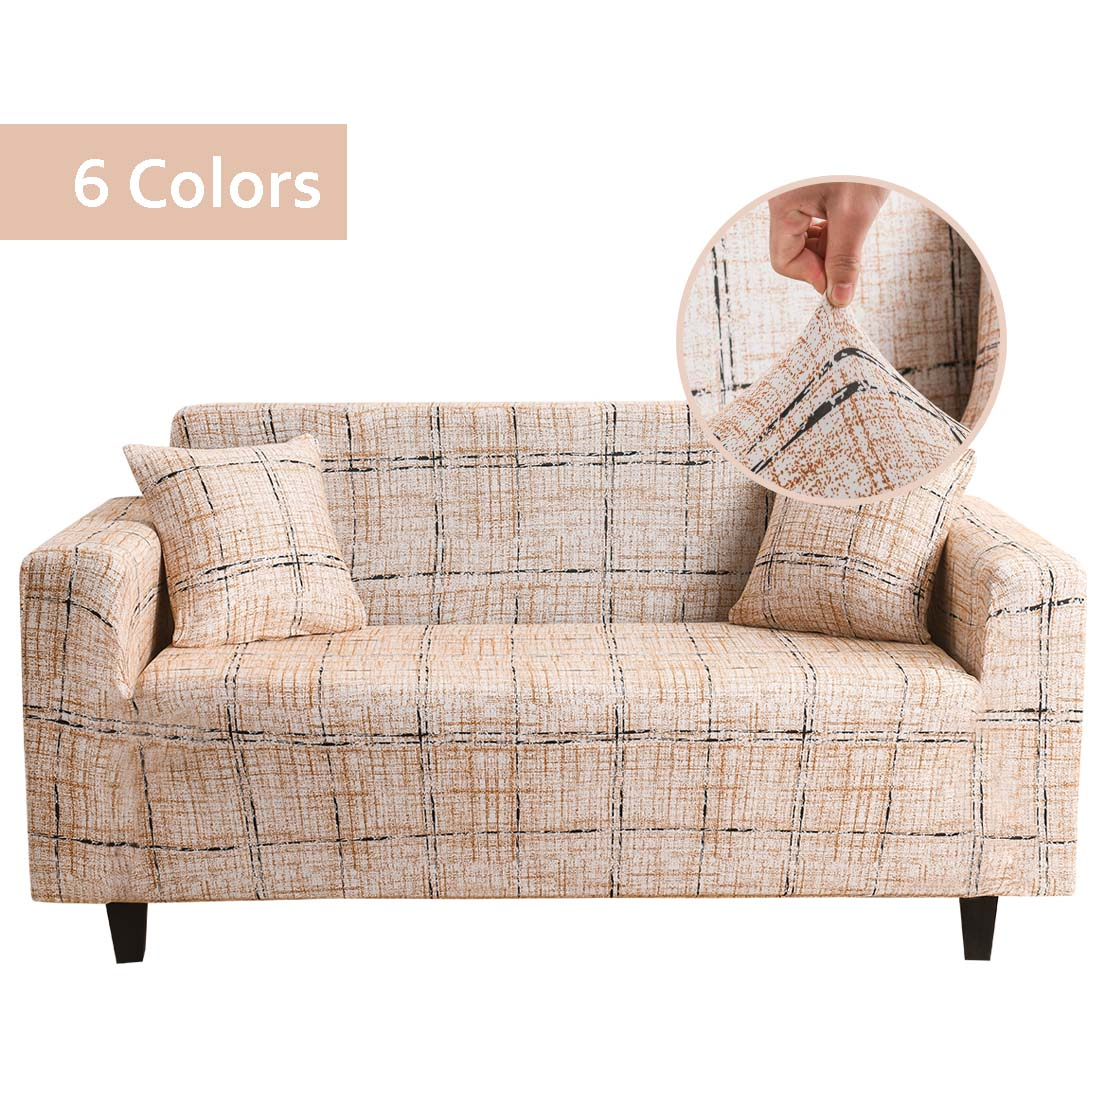 1 2pcs elastic sofa covers for living room l shape sectional slipcovers strench armchair couch covers 1 2 3 4 seater funda cover Plaid Sofa Covers for Living Room Elastic Couch Covers for Sofas Sectional Slipcovers L Shape Sofa Cover Protector 1/2/3/4 Seat